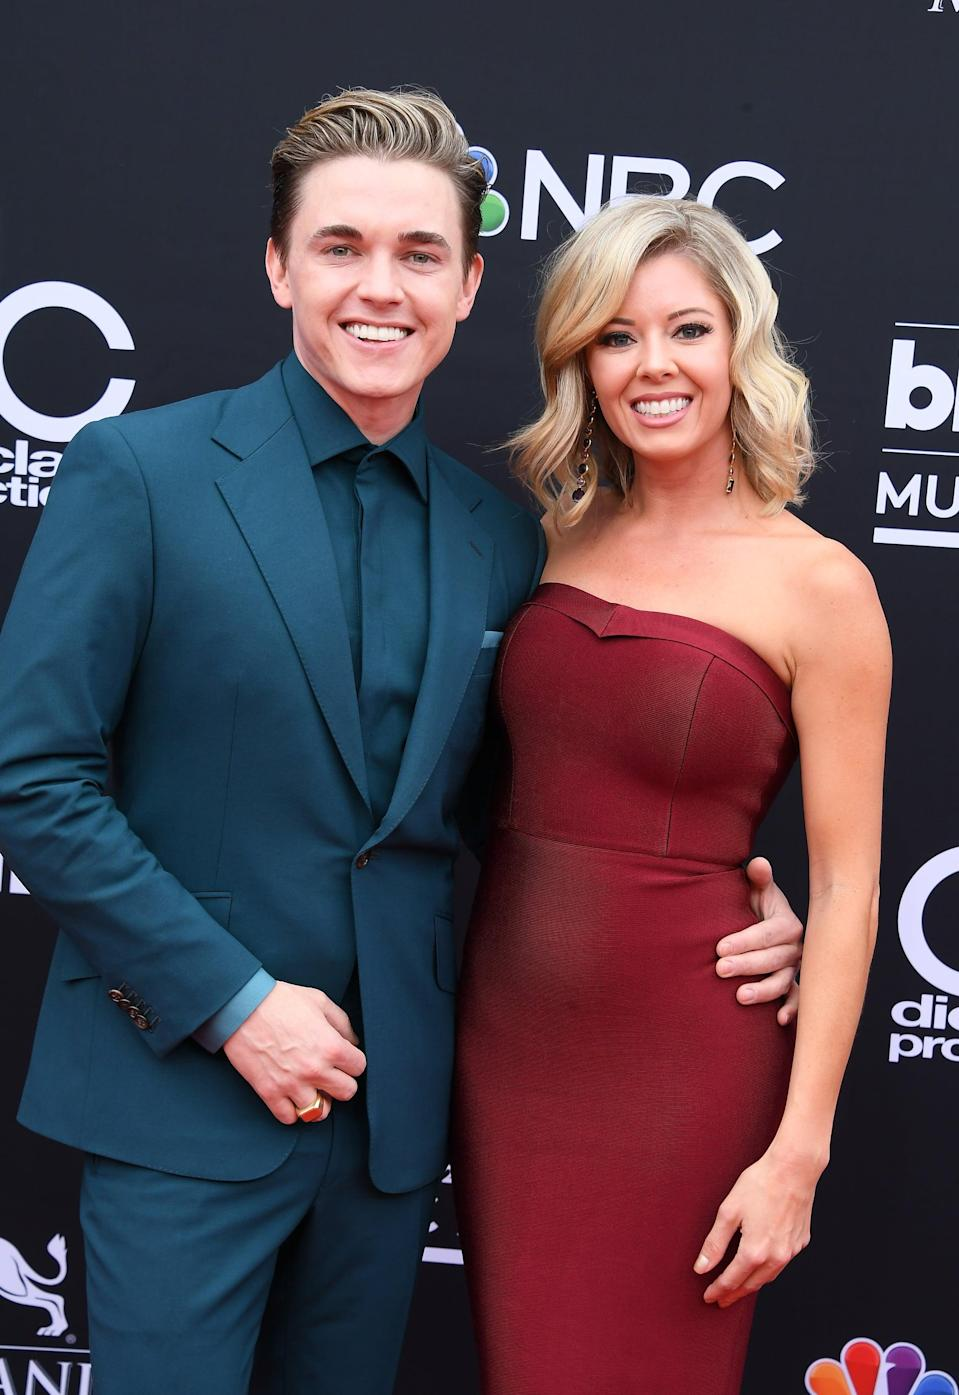 "<p>In September 2019, the ""Beautiful Soul"" singer <a href=""https://www.usmagazine.com/celebrity-news/news/jesse-mccartney-is-engaged-to-katie-peterson-details/"" class=""link rapid-noclick-resp"" rel=""nofollow noopener"" target=""_blank"" data-ylk=""slk:popped the question"">popped the question</a> while dining with the <strong>Step Up Revolution</strong> actress in Beverly Hills, <strong>Us Weekly</strong> confirms. The duo has been together since 2012.</p>"